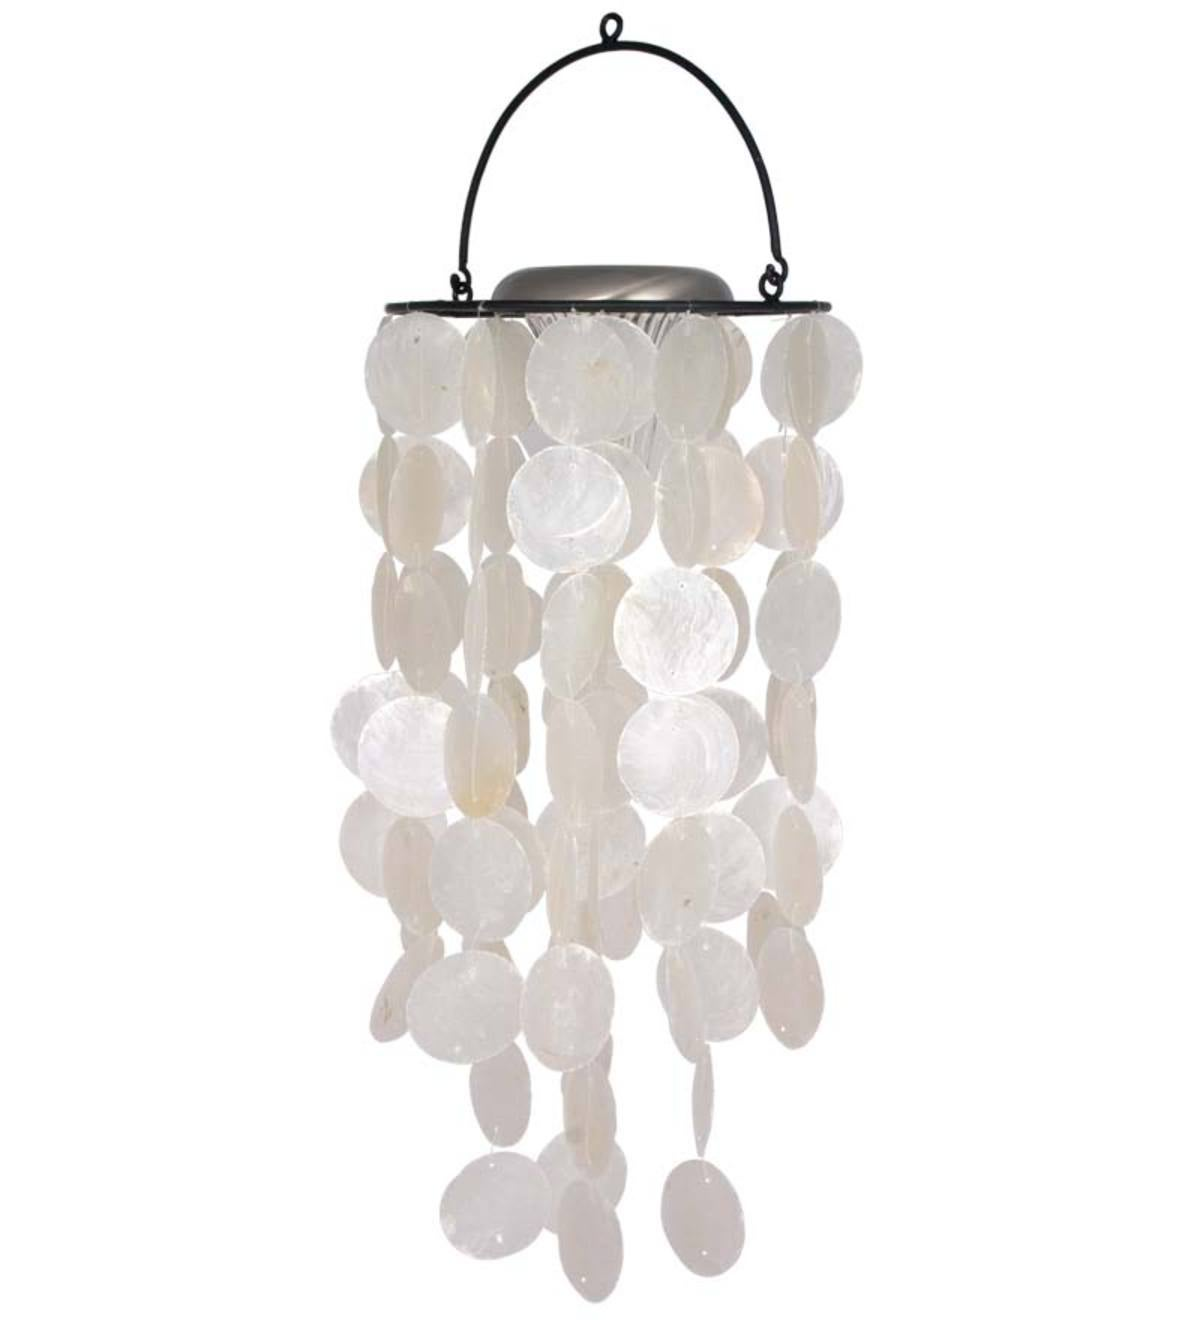 Light-Up Capiz Solar Wind Chime